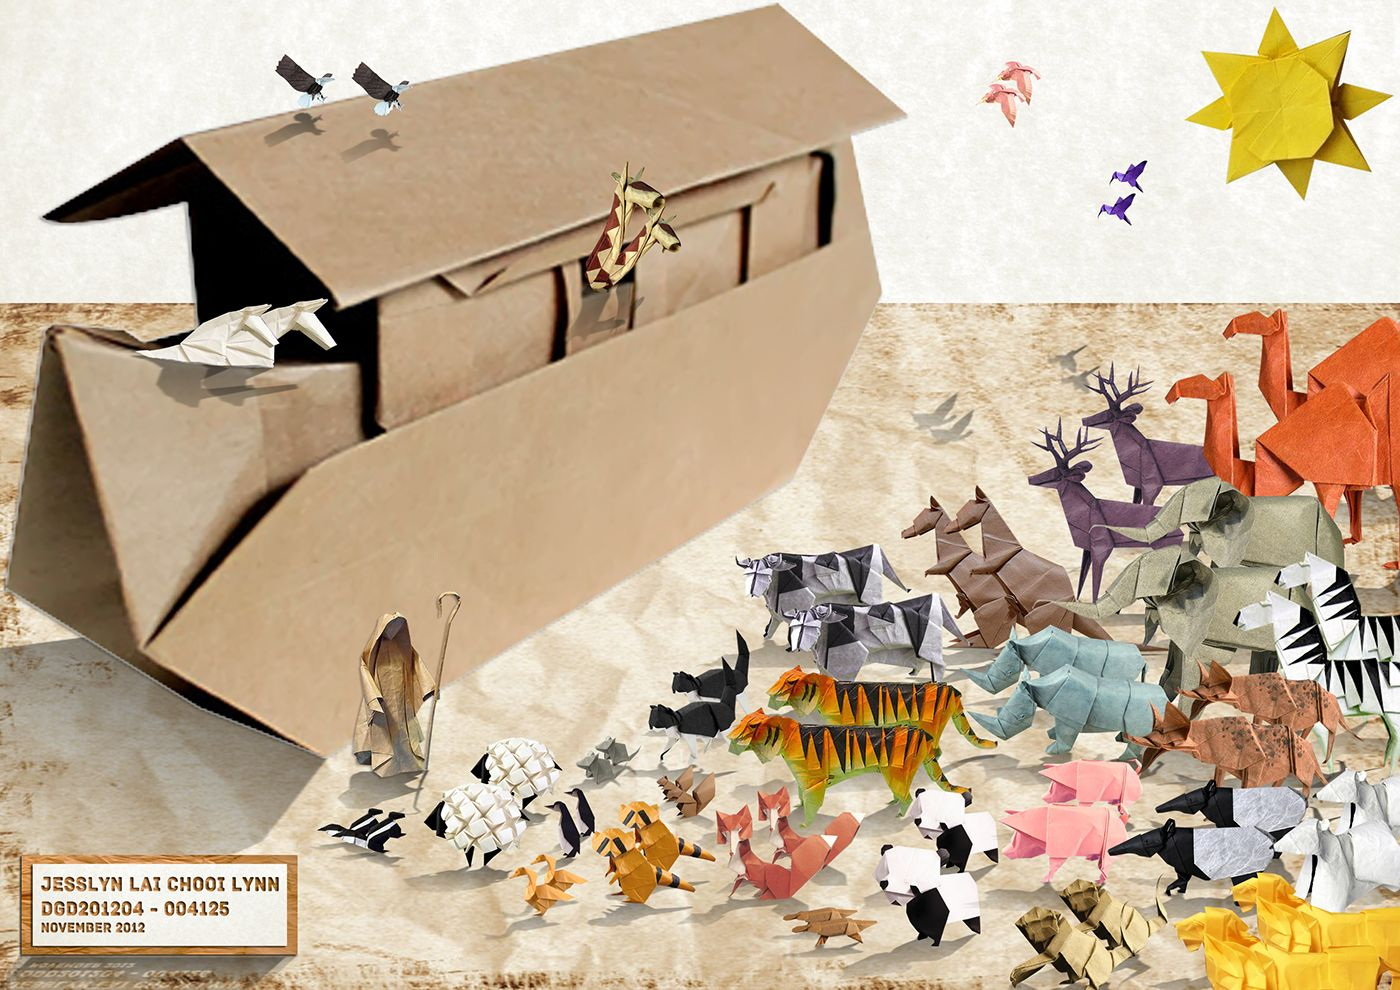 A collage of images collected online to create the origami noahs a collage of images collected online to create the origami noahs ark theme malvernweather Image collections